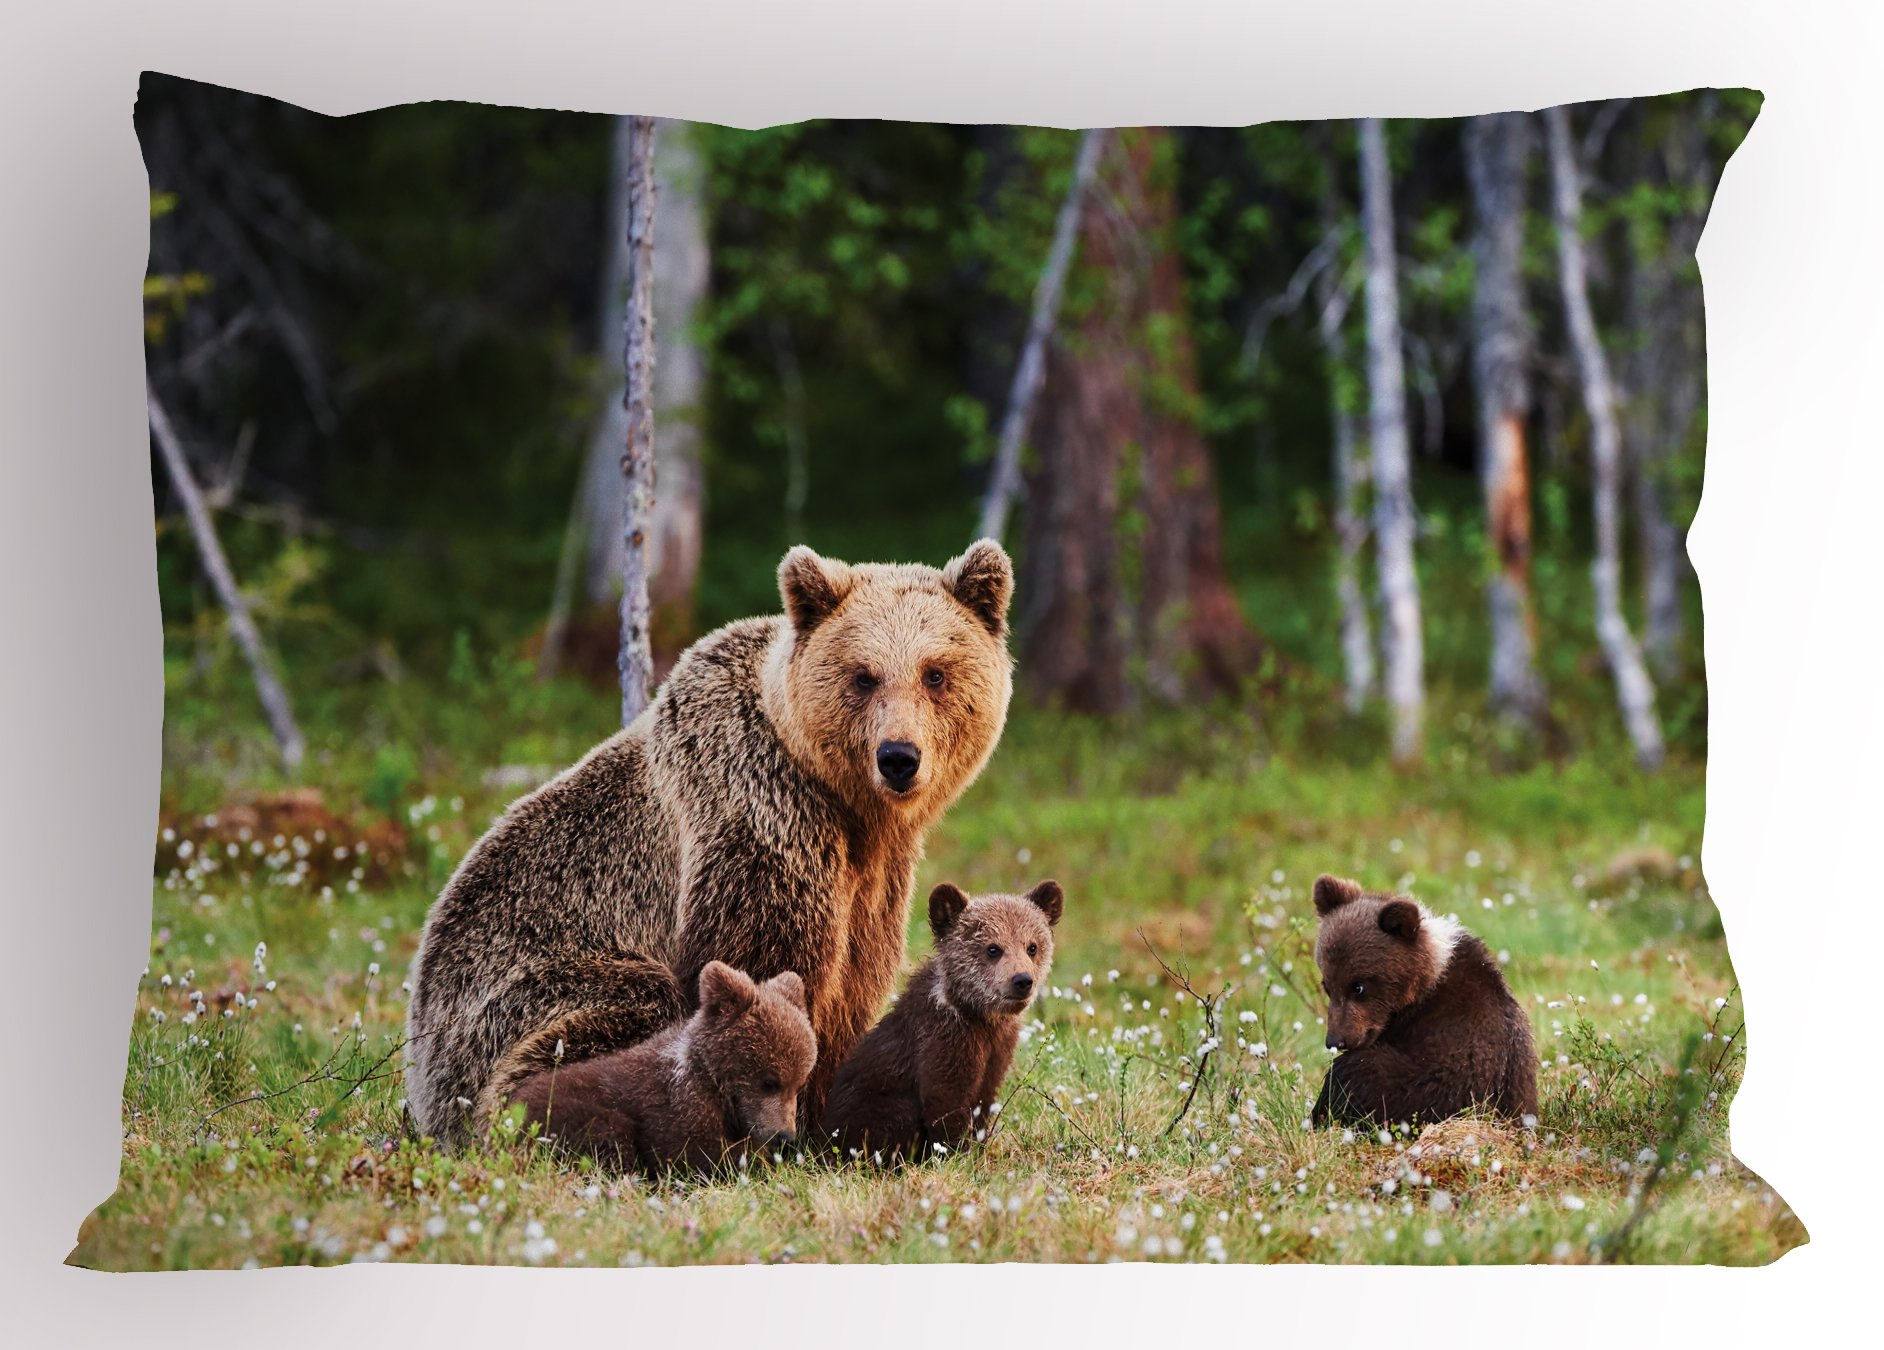 Lunarable Nature Pillow Sham, Wild Mother Grizzly Bear Protecting Her Babies in Forest Jungle Animal Print, Decorative Standard King Size Printed Pillowcase, 36 X 20 inches, Green and Brown